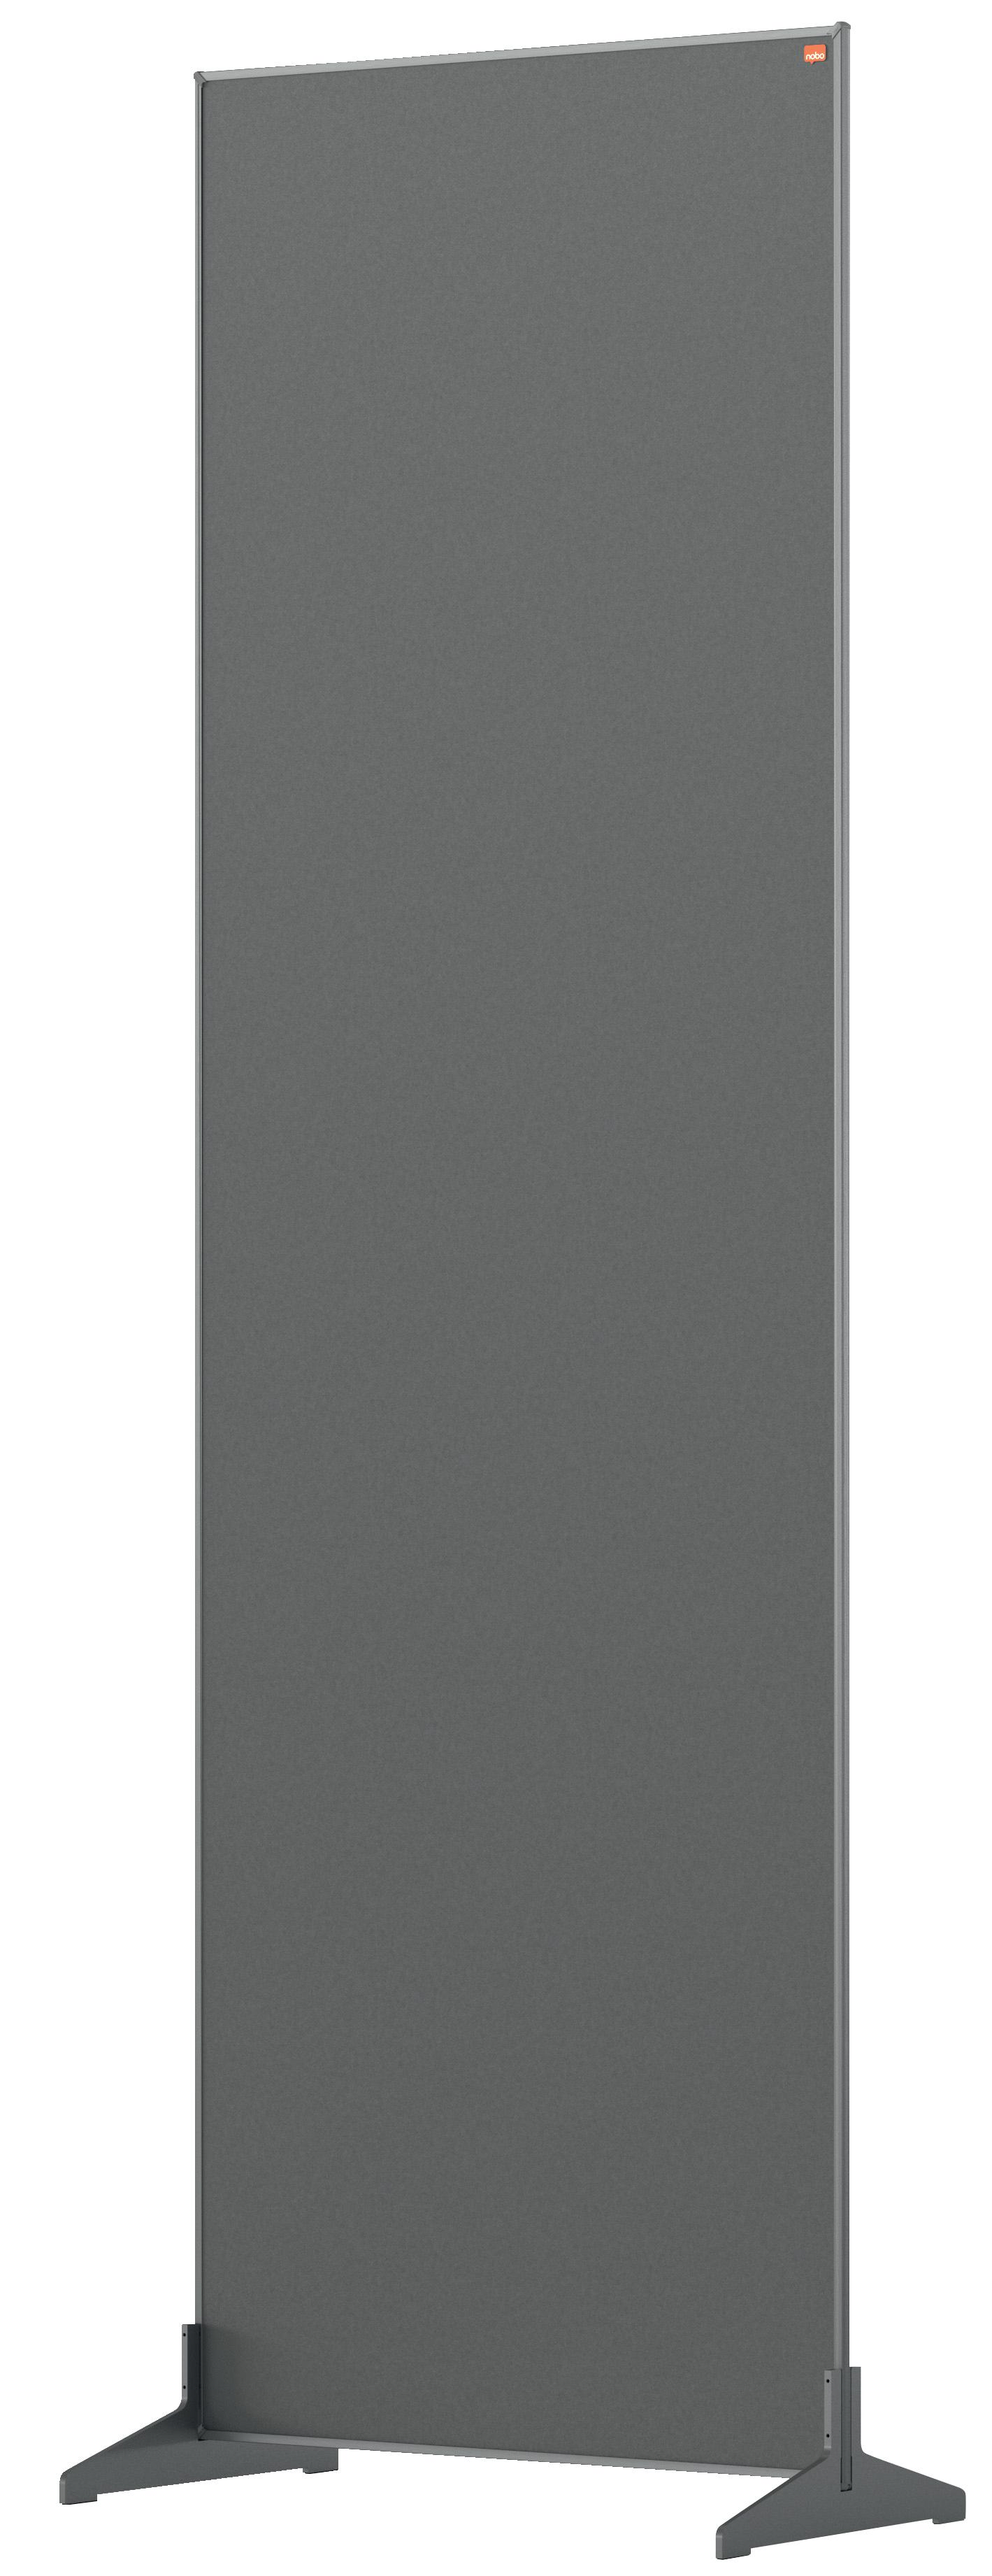 Straight Tops Nobo Impression Pro Floor Divider 600x1800mm Grey